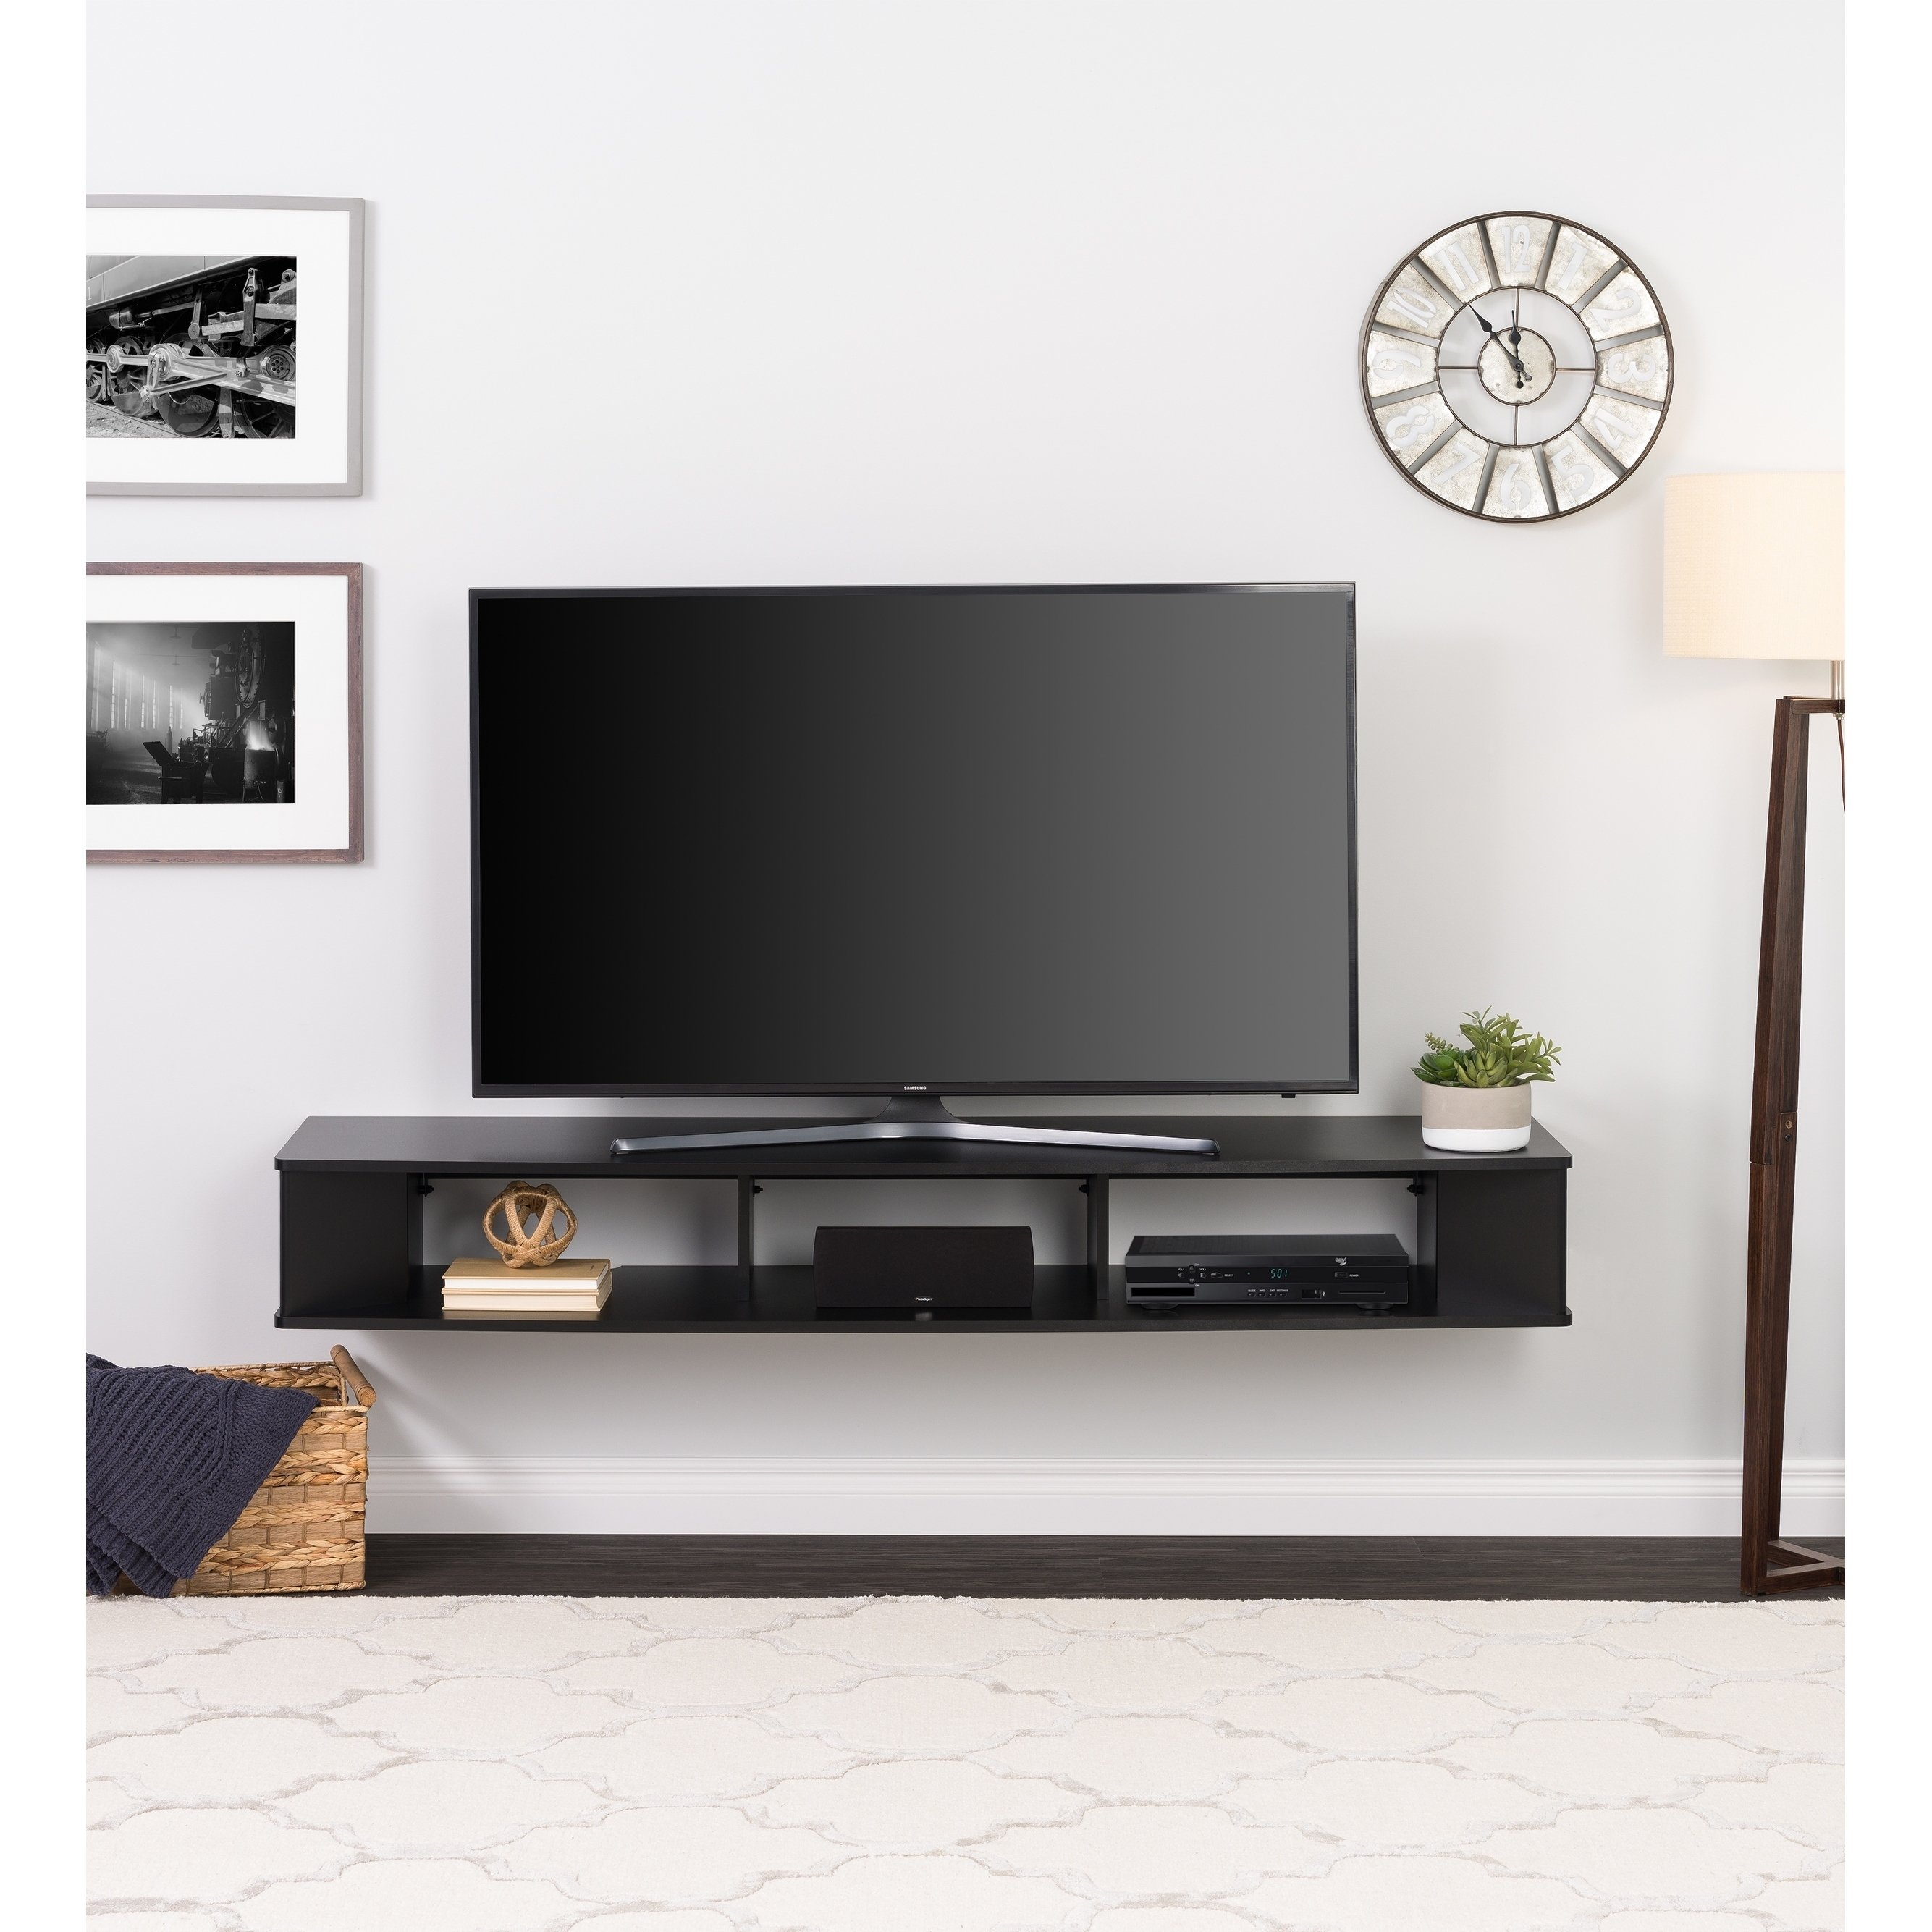 Shop Prepac 70 Inch Wide Wall Mounted Tv Stand - Free Shipping Today intended for Century Sky 60 Inch Tv Stands (Image 27 of 30)